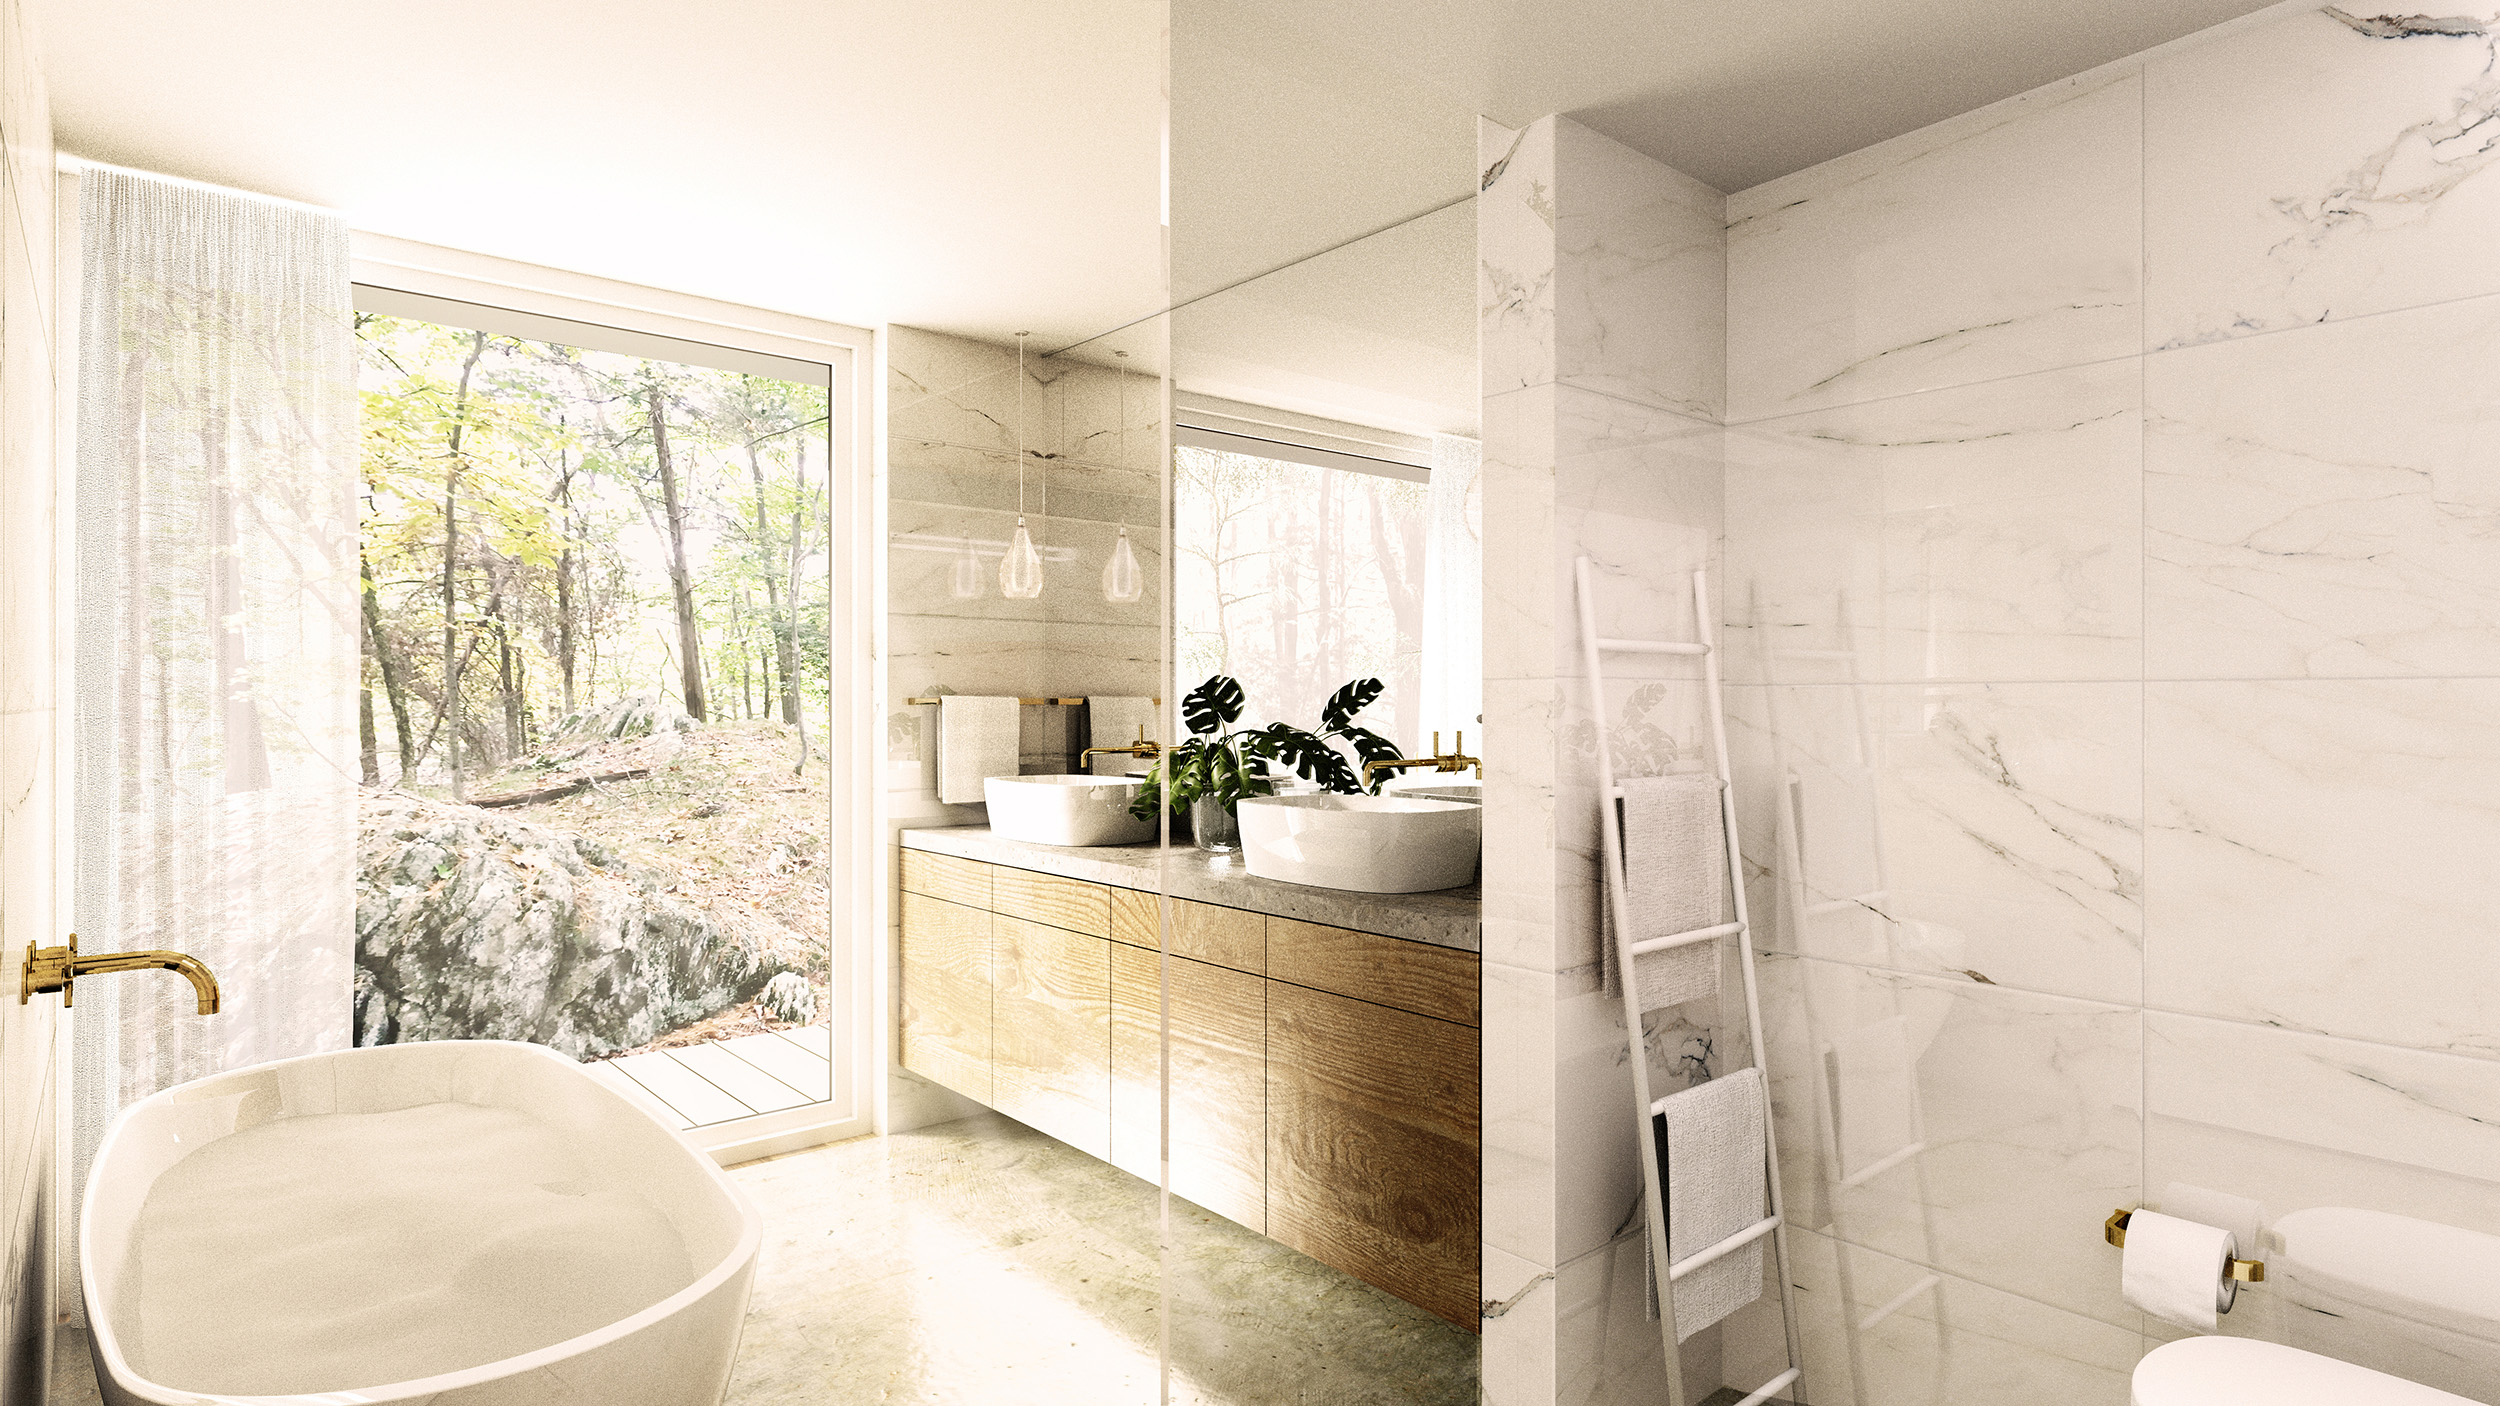 The Master Ensuite, featuring a freestanding soaking tub, looks out towards a rocky outcrop, and the untouched, protected wetlands beyond.